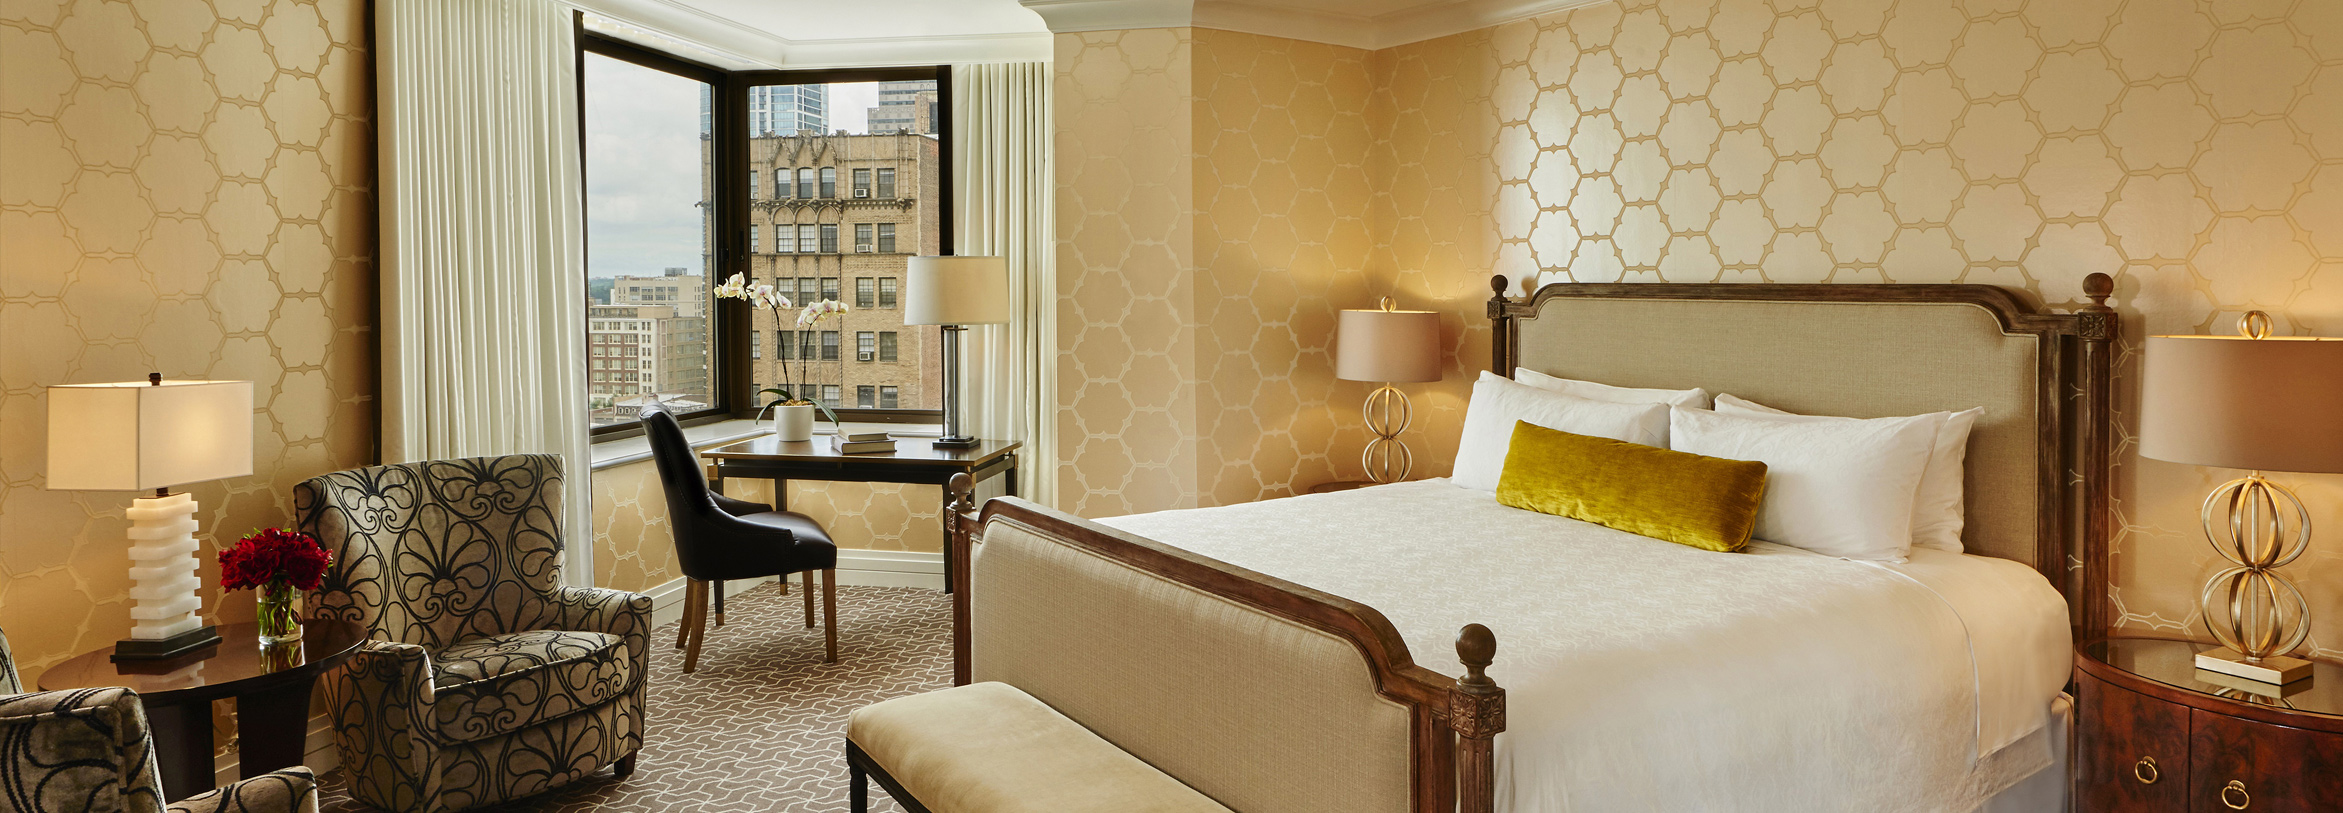 Rittenhouse Hotel - Luxury Philadelphia Holiday - Ker & Downey